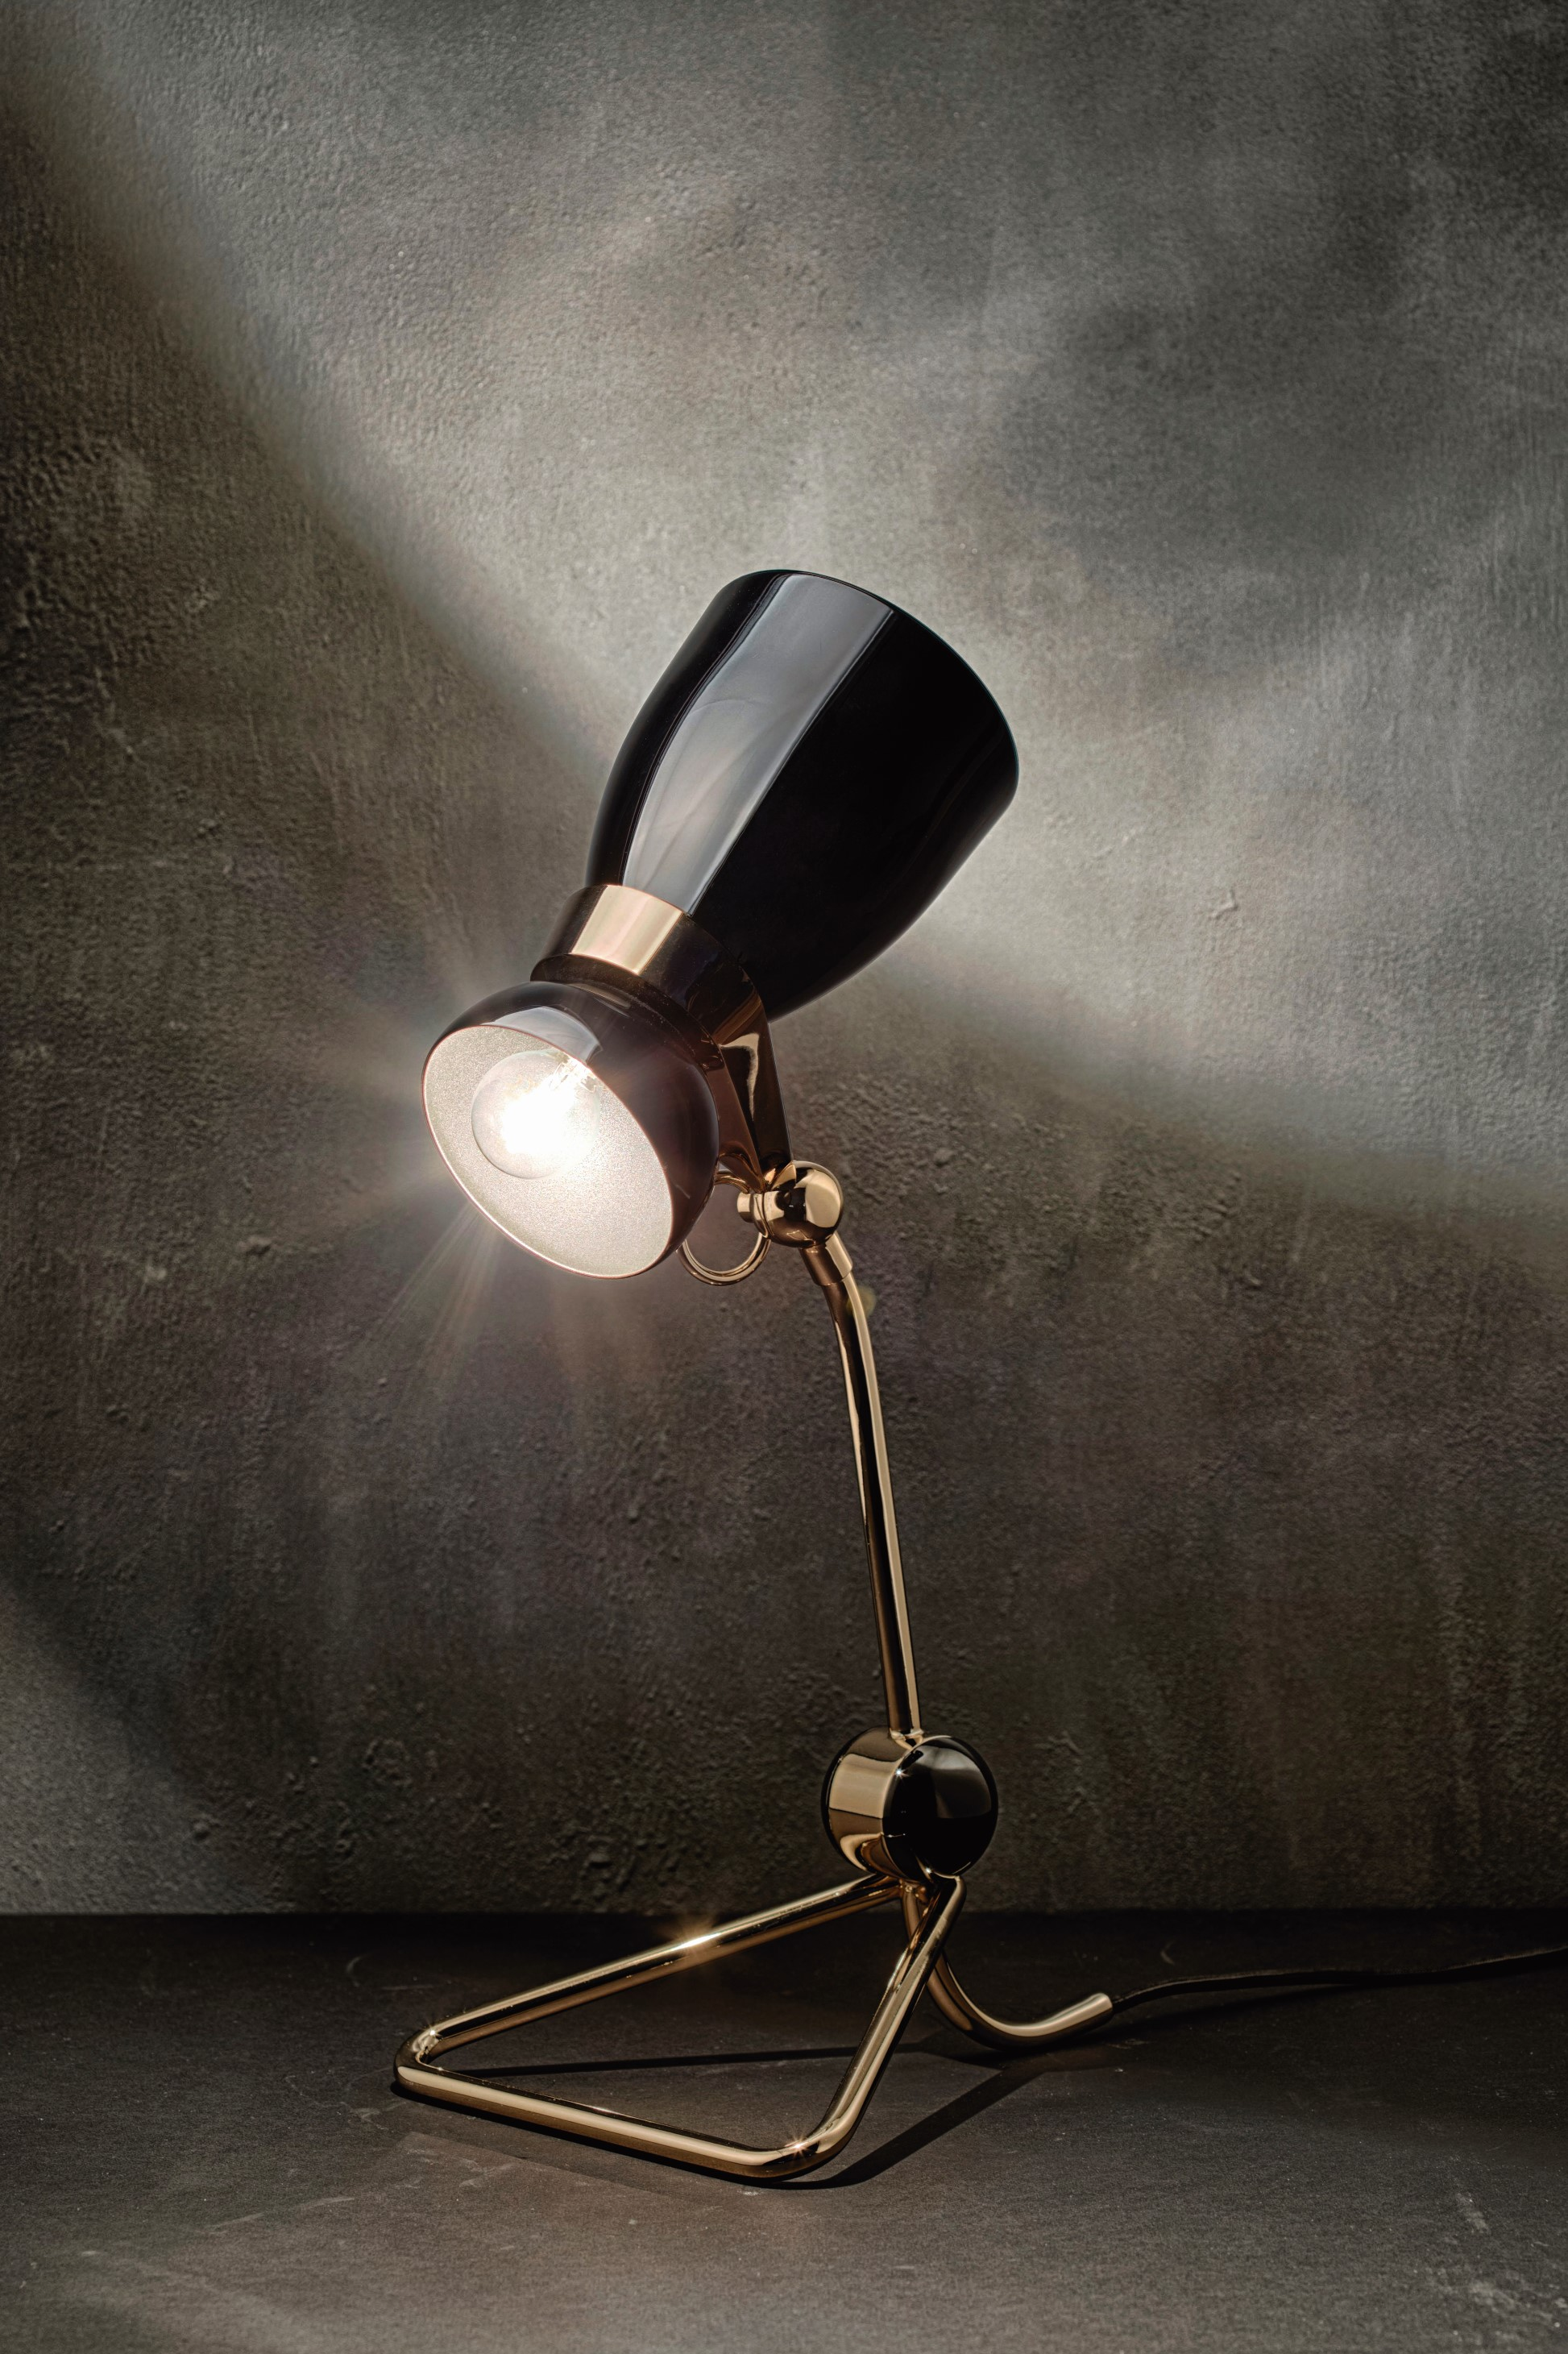 Amy Winehouse A Jazz icon transformed into a mid-century lighting design 16